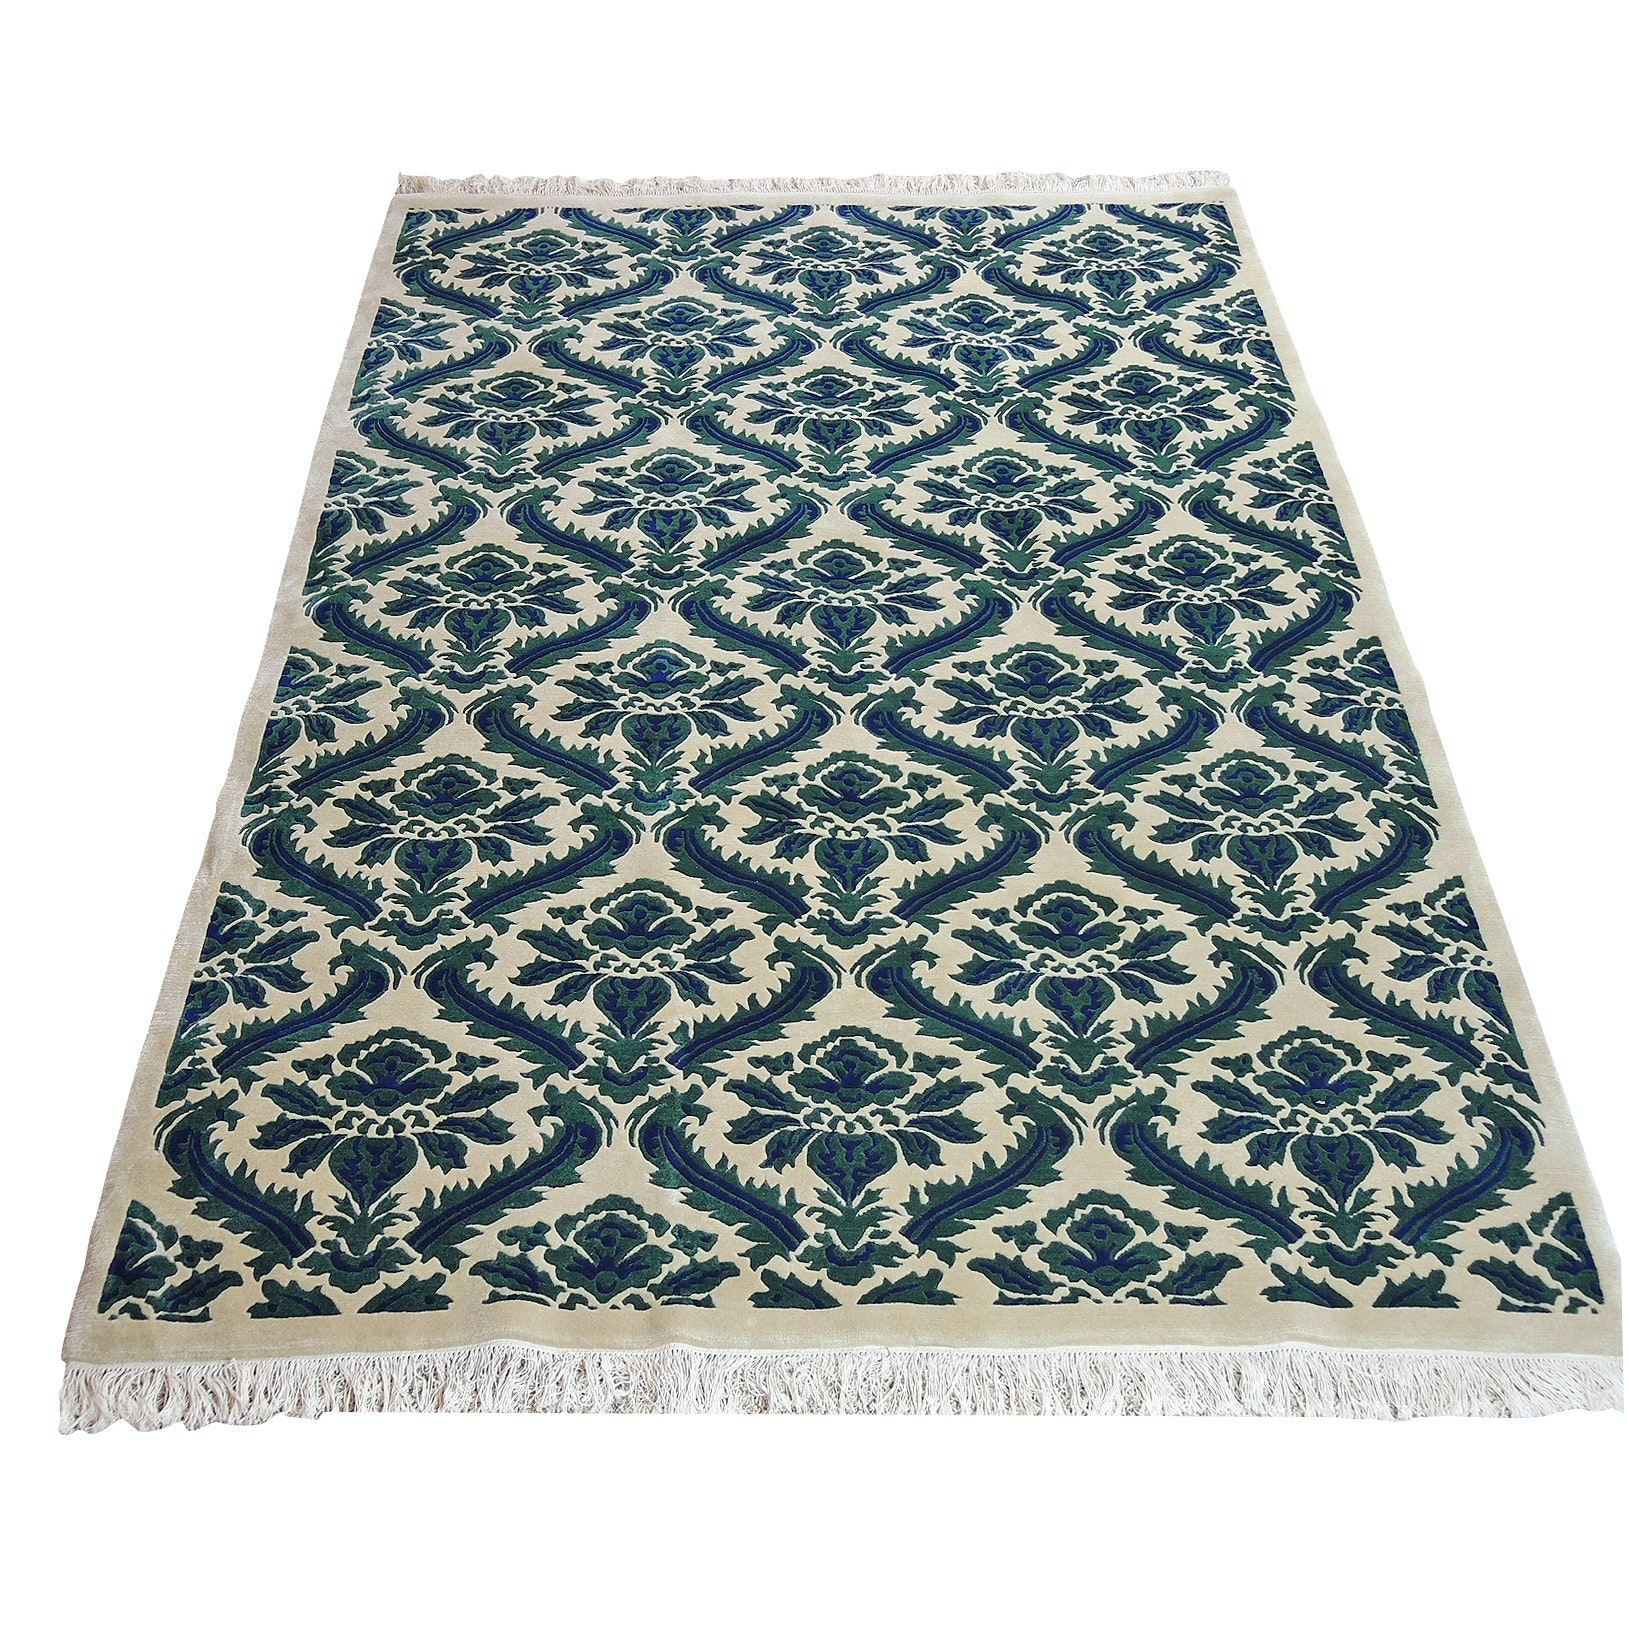 Machine Woven Indian Wool and Cotton Area Rug from Hoffman Albers